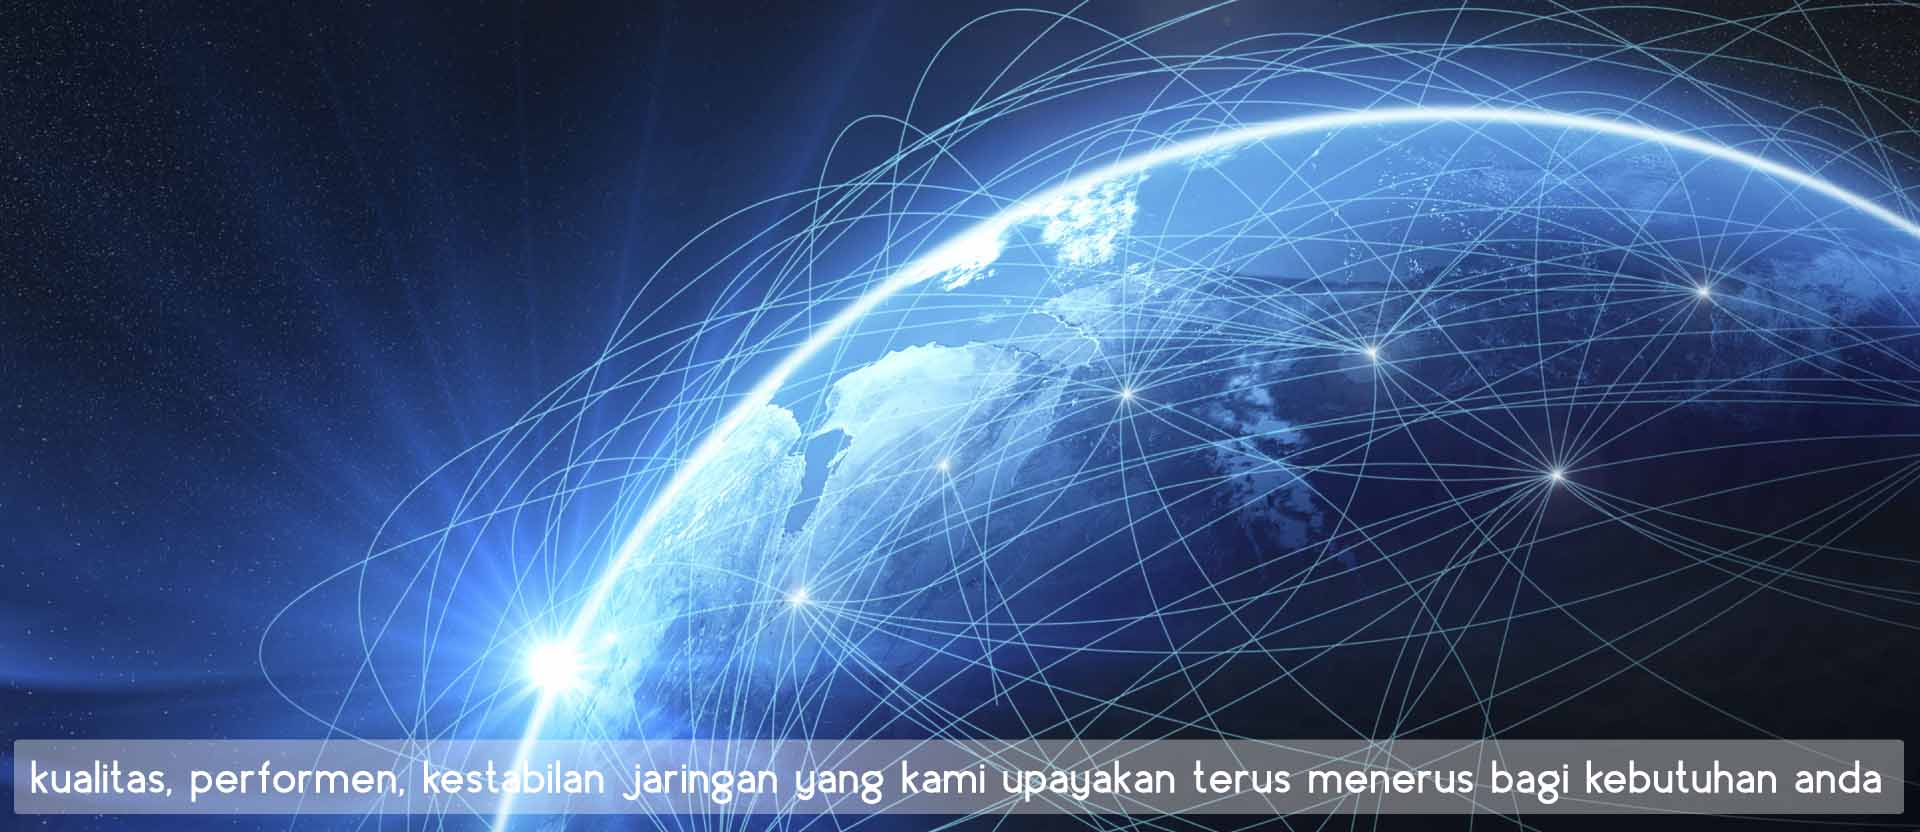 isp di indonesia